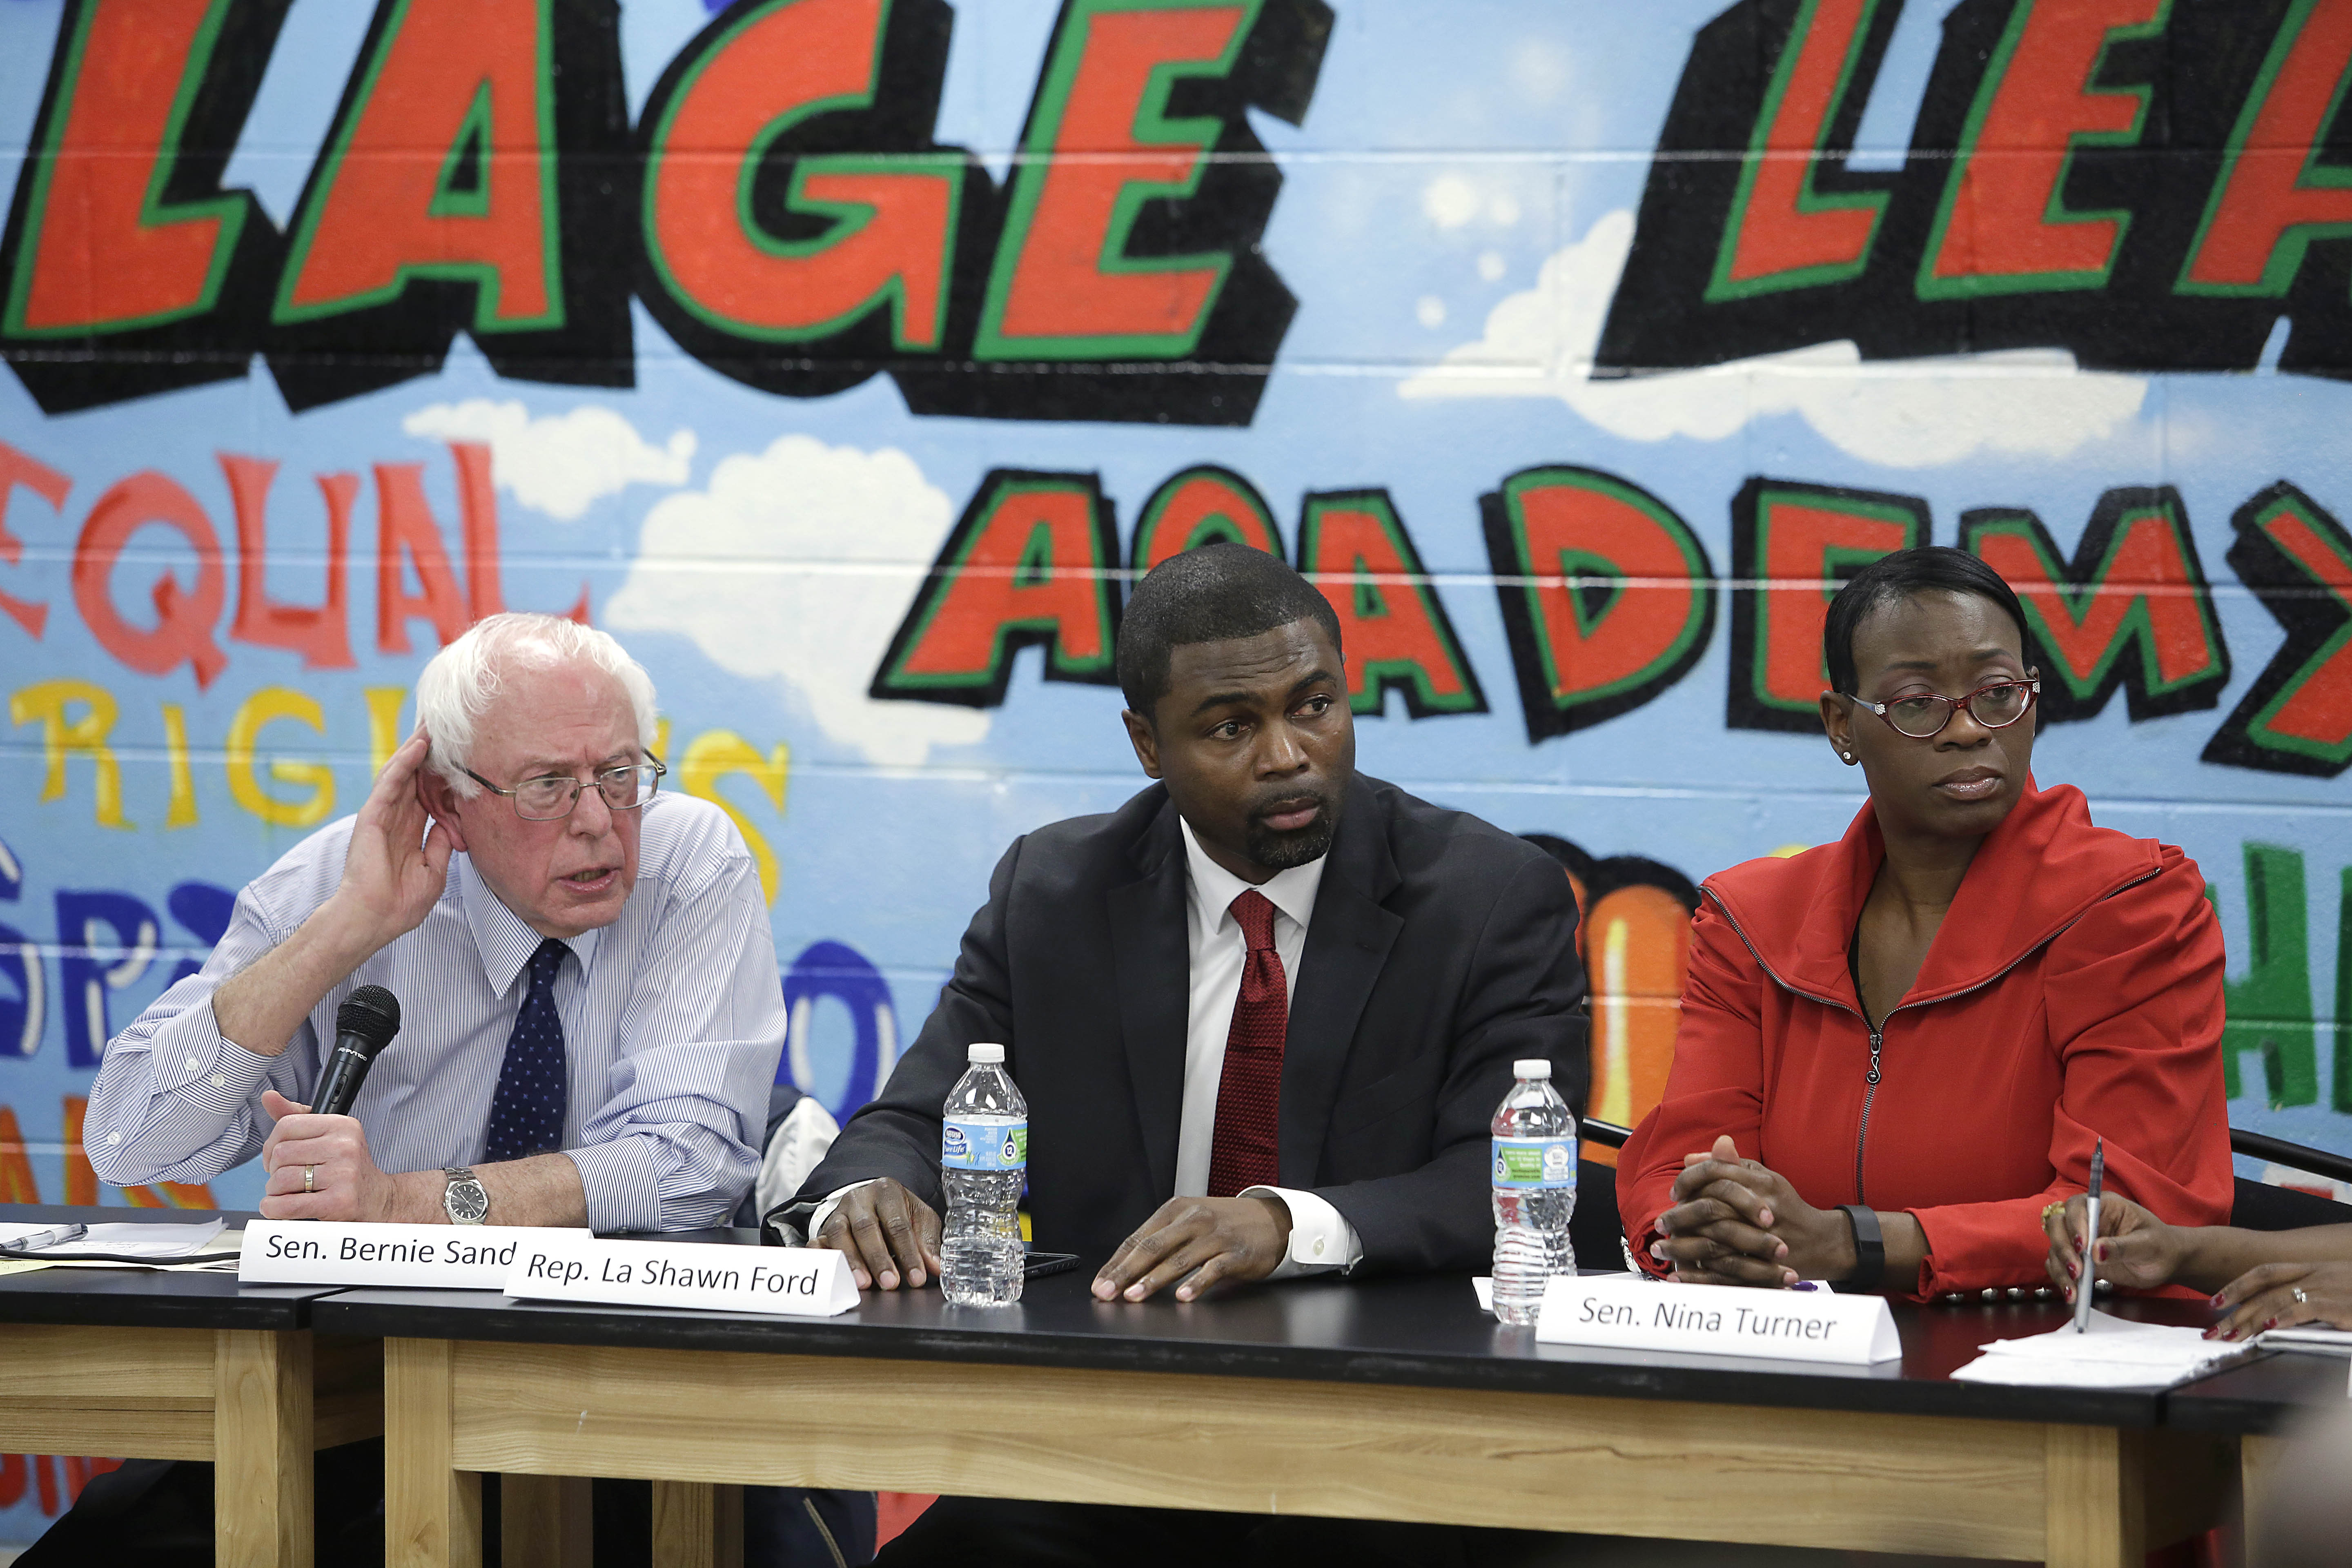 CHICAGO, IL - DECEMBER 23: Democratic presidential candidate U.S. Senator Bernie Sanders (I-VT), left, State Representative La Shawn Ford (D-IL), center, and former Ohio State Senator Nina Turner listen listen to a question for Sanders during a round table meeting with local activist and community members December 23, 2015 in Chicago, Illinois. Sanders, who is seeking the nomination from the Democratic Party talked about police reform and preventing people of color from being victimized by police officers across the country. (Joshua Lott/Getty Images)